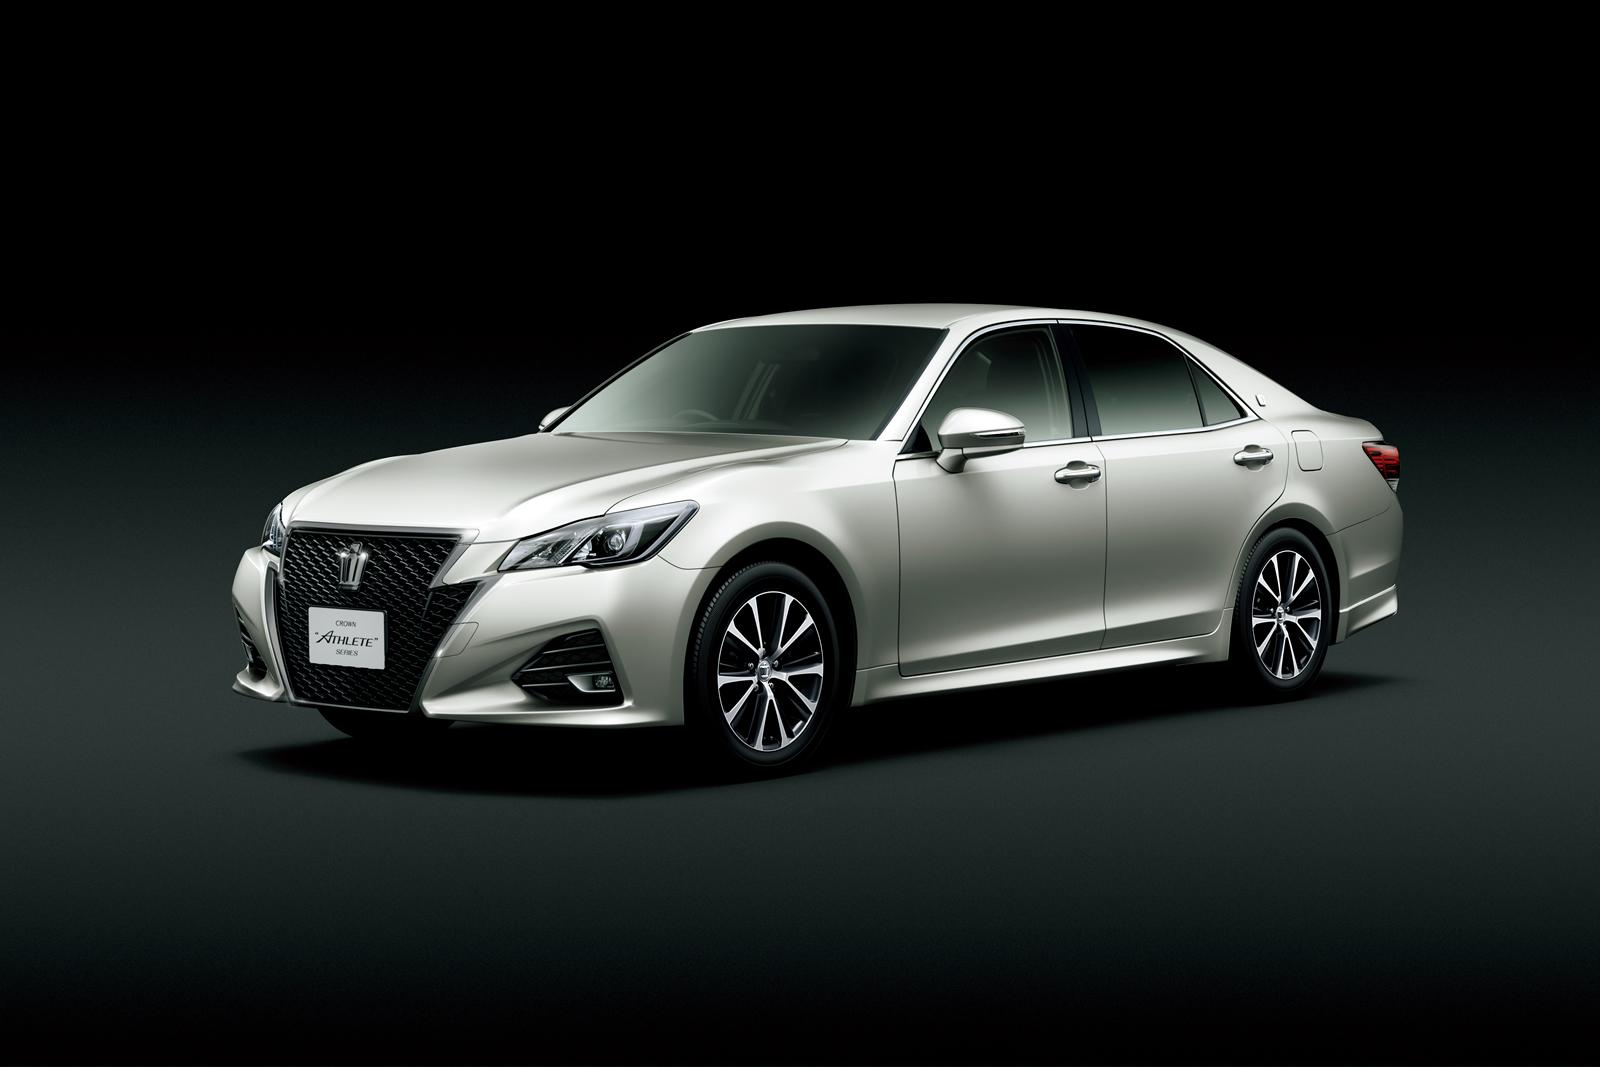 Toyota Crown 2014 >> 2014 Toyota Crown Athlete Is a Cool Sedan You Can't Have - autoevolution